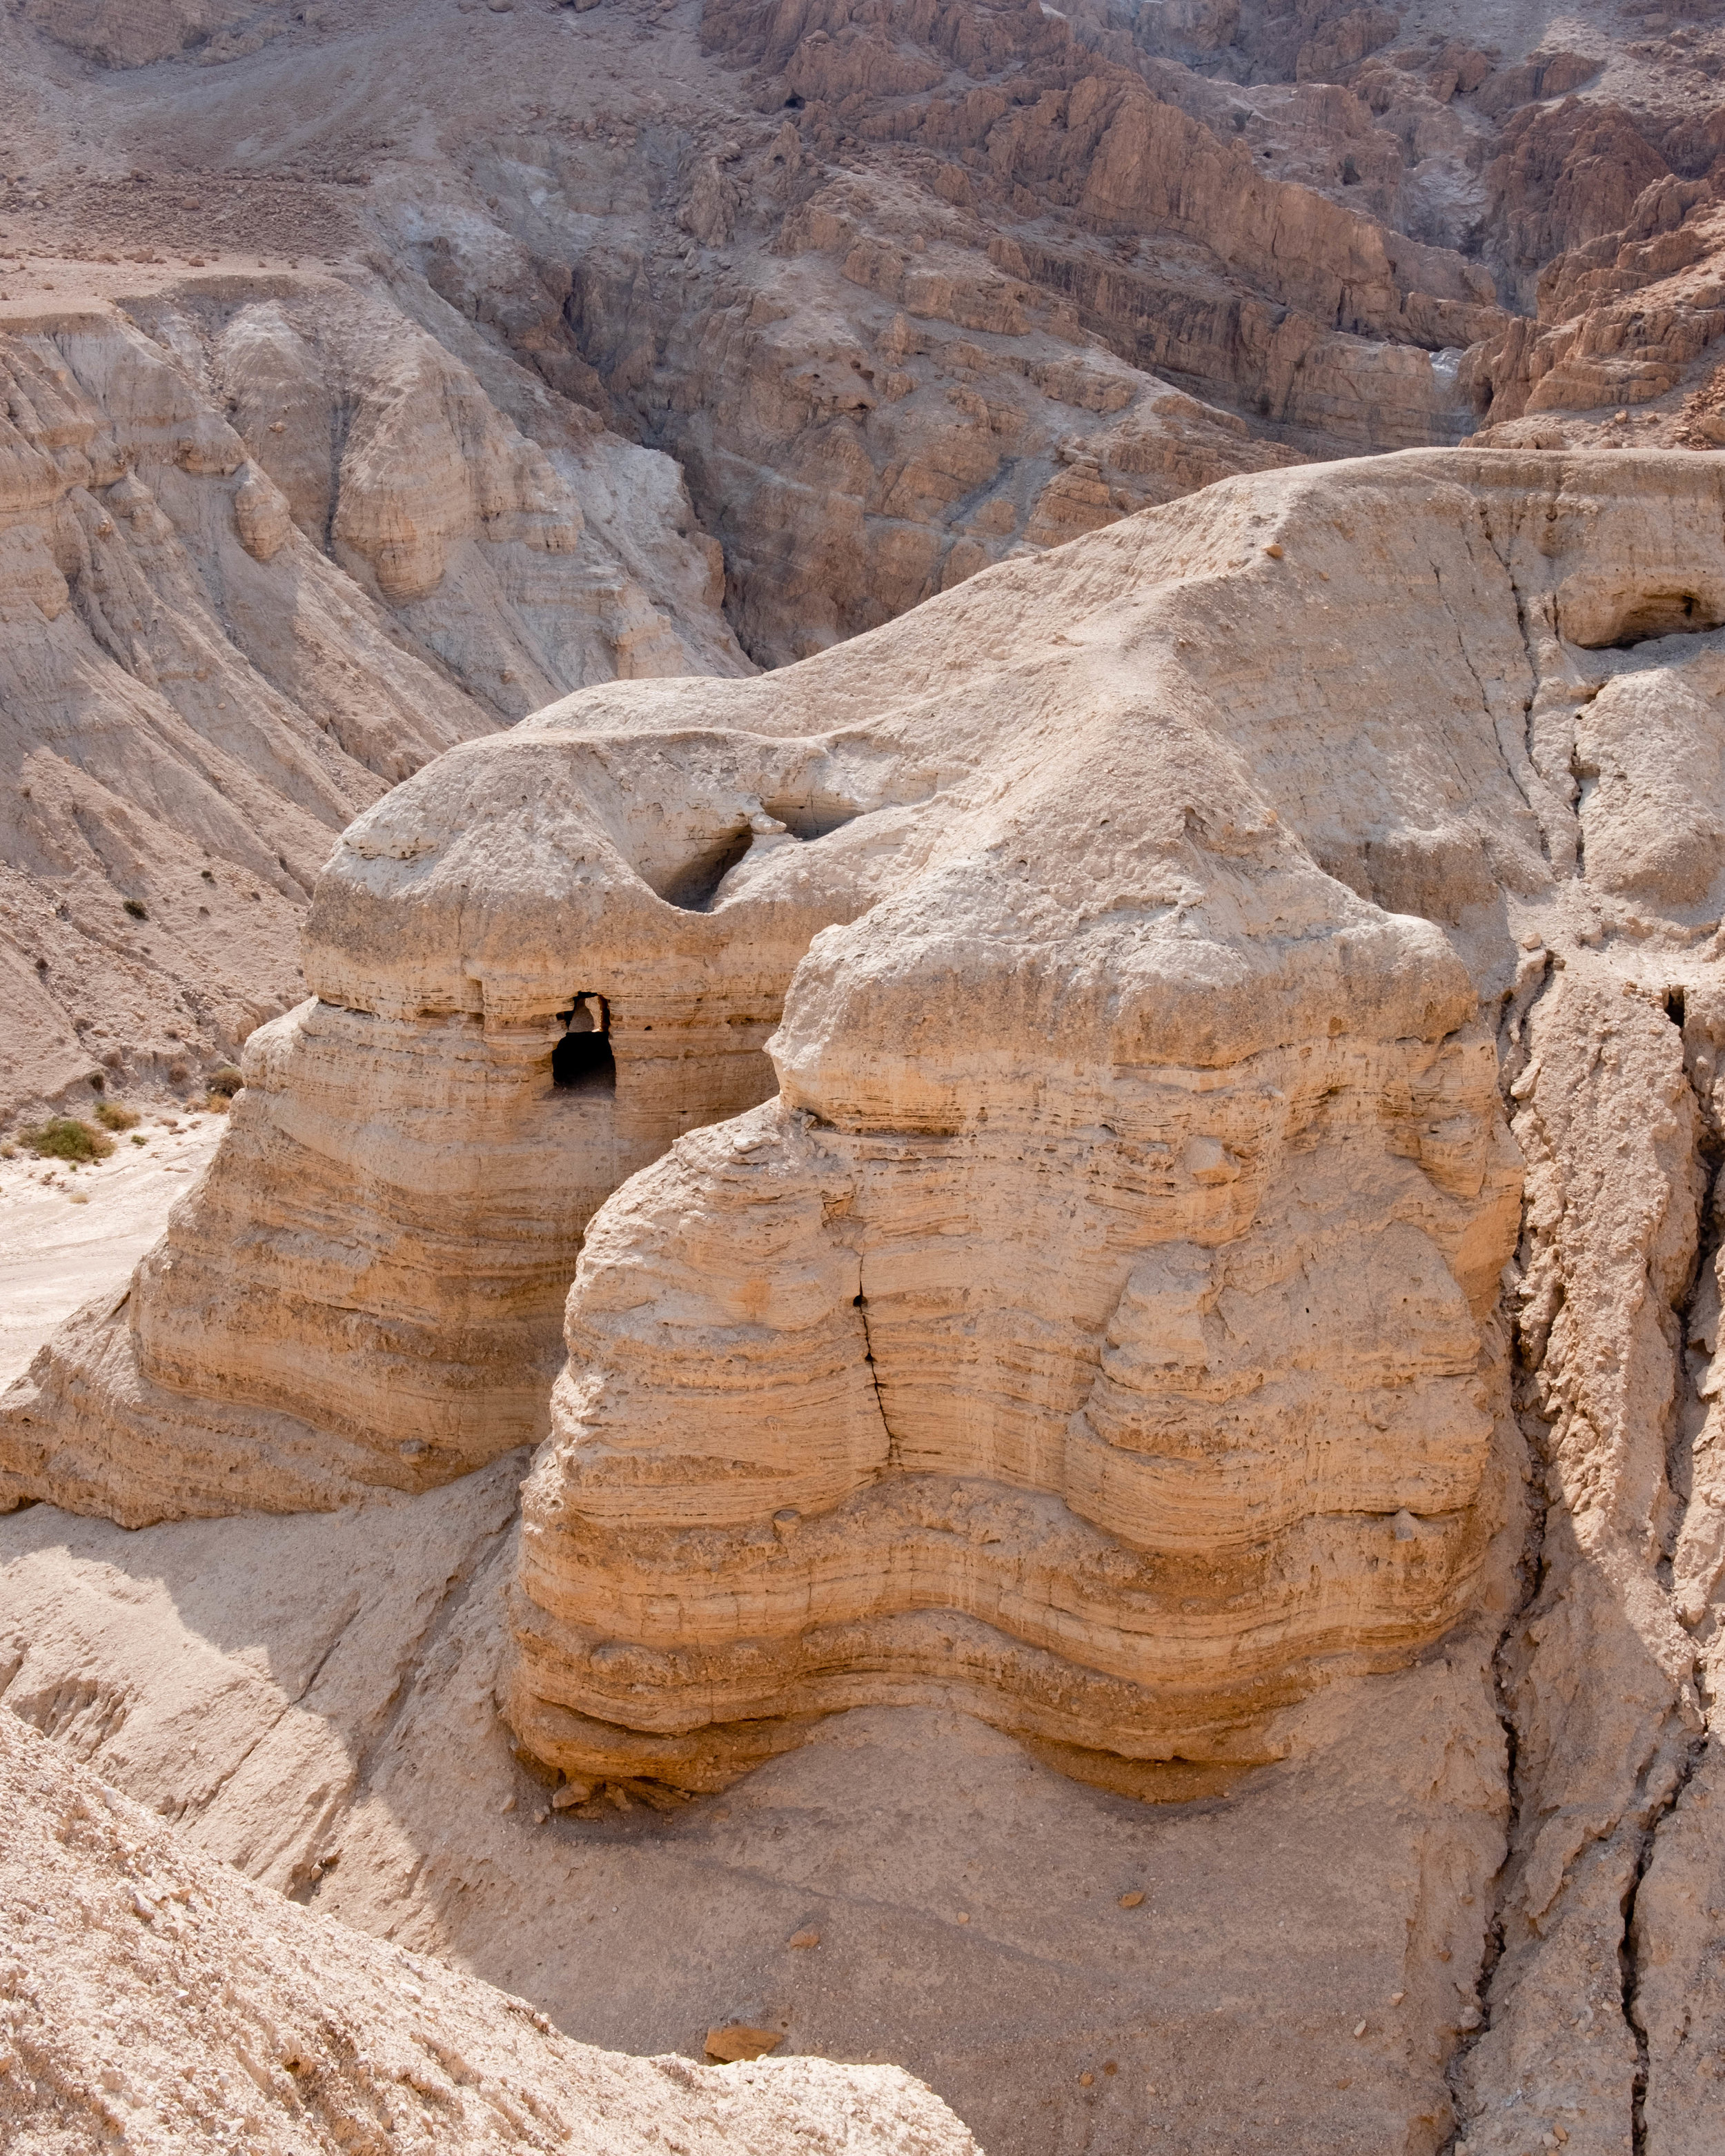 qumran national park, israel.